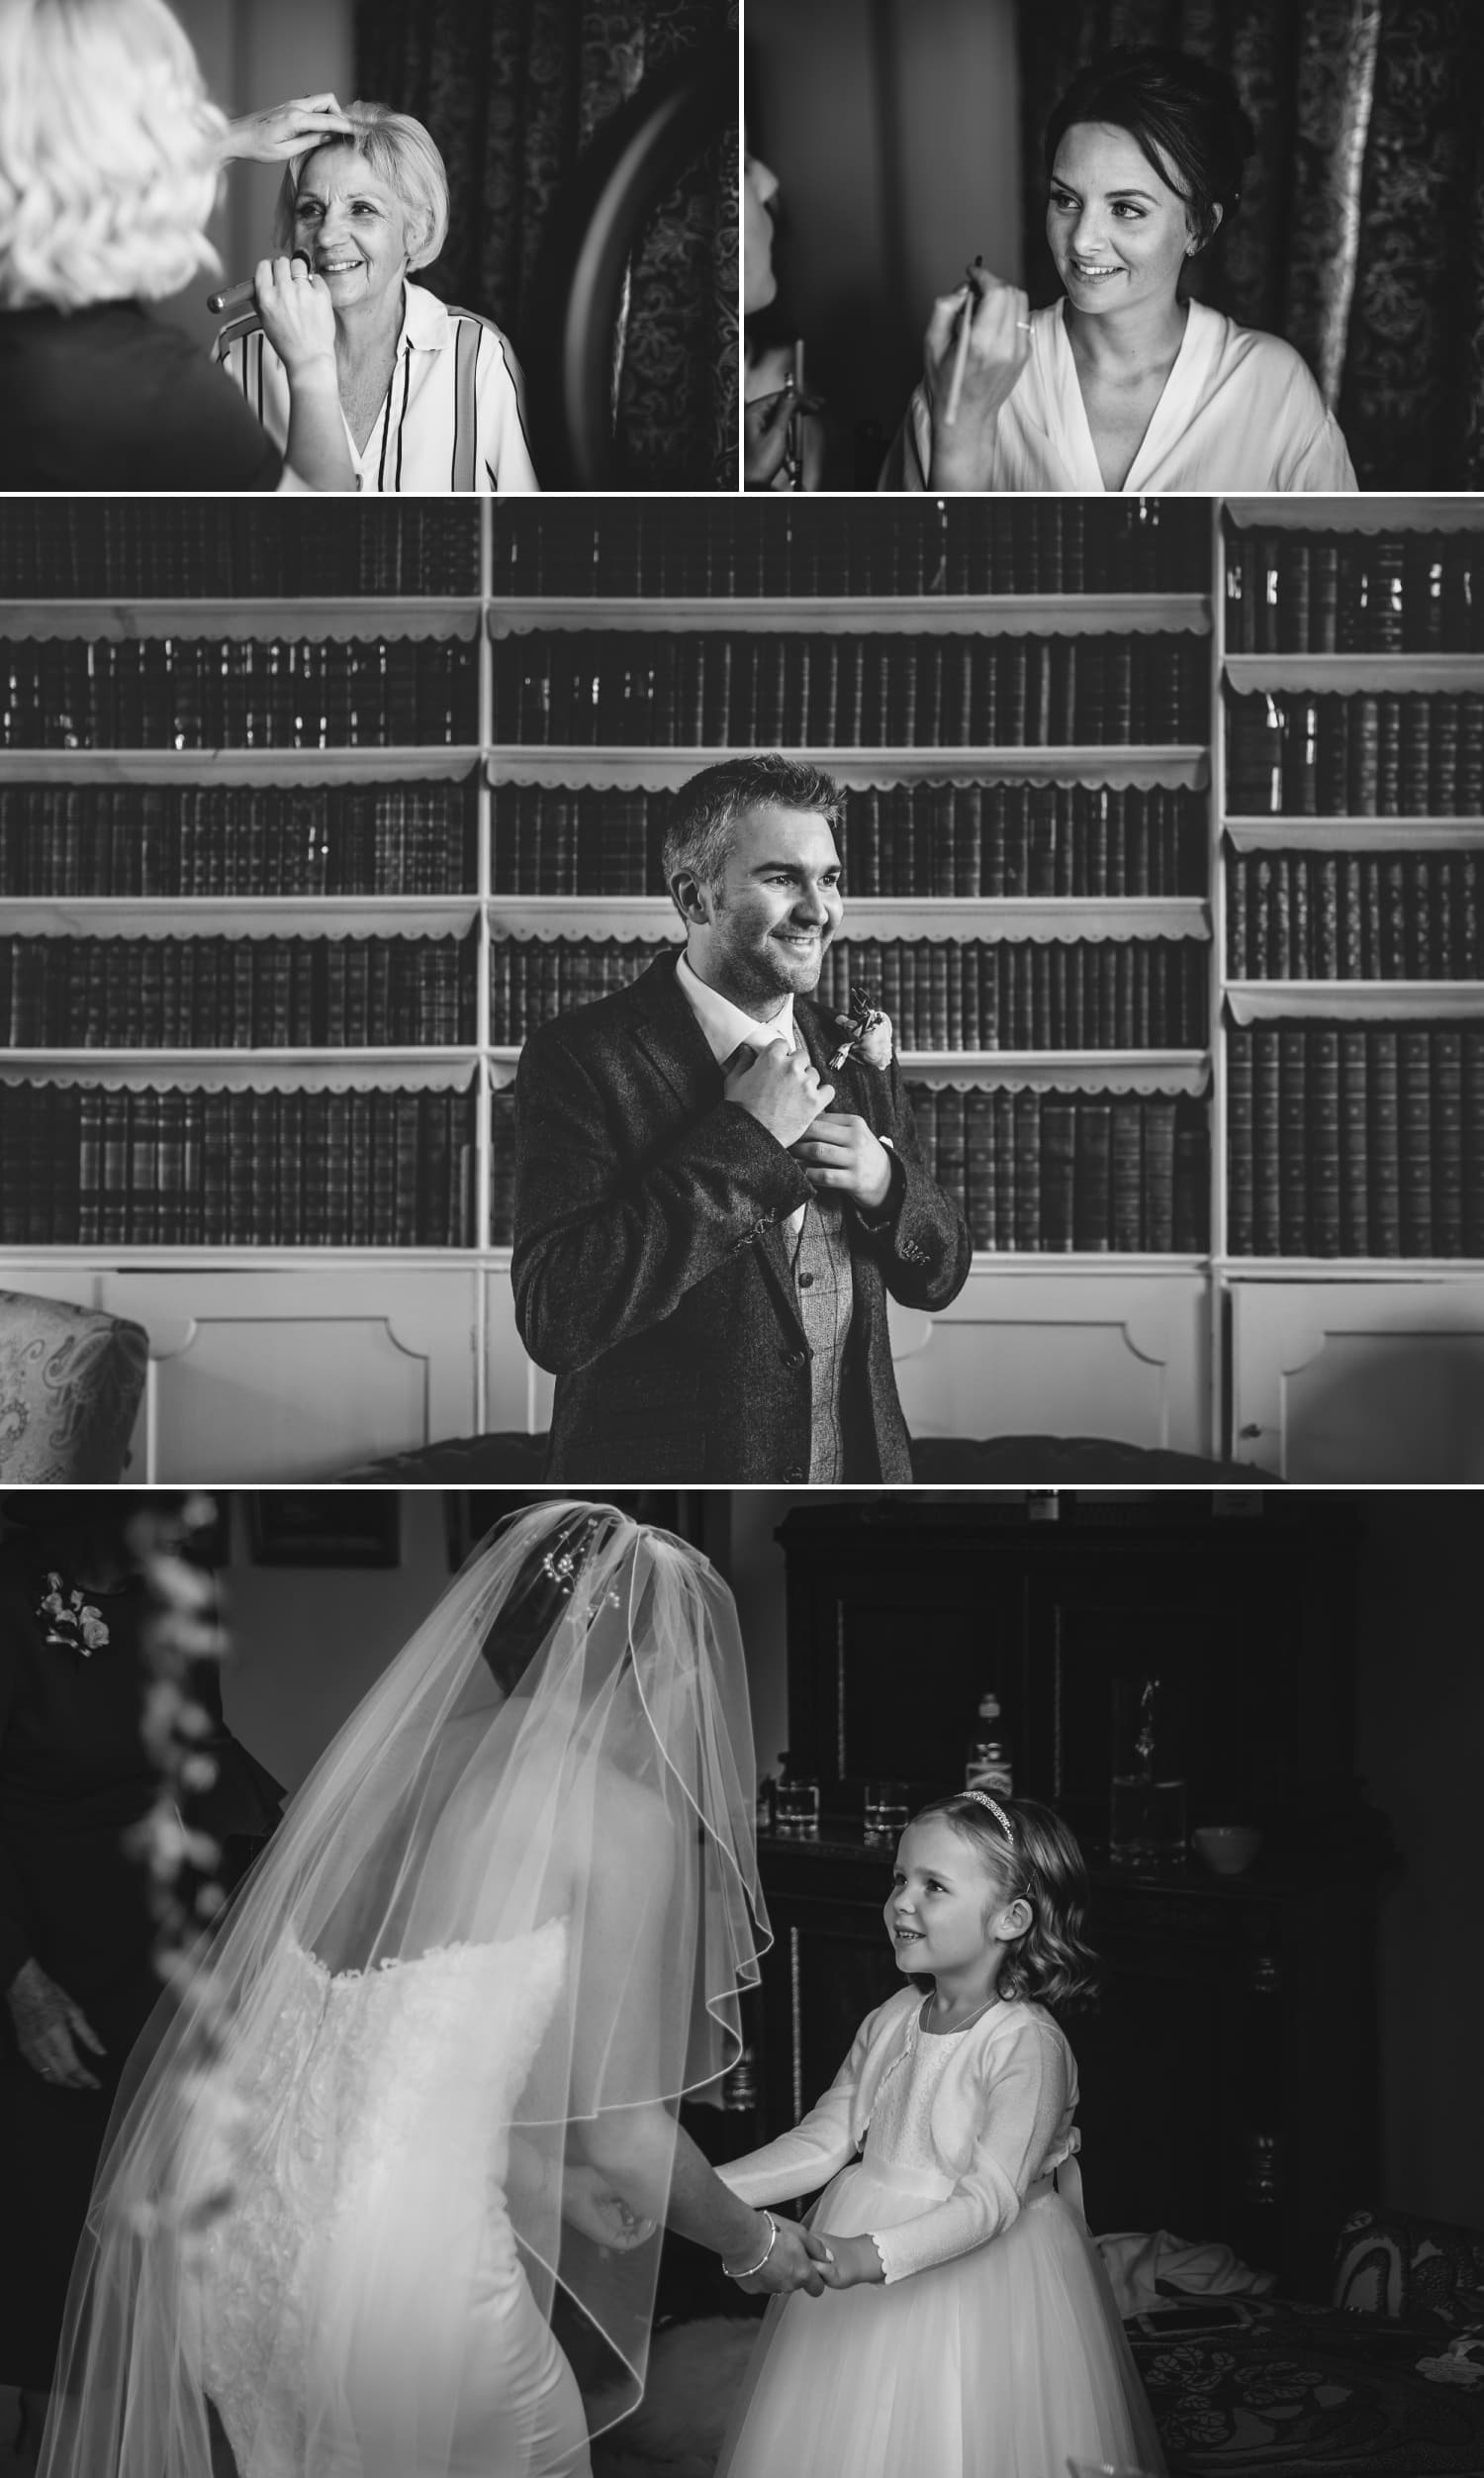 Black and white wedding photography at Iscoyd Park